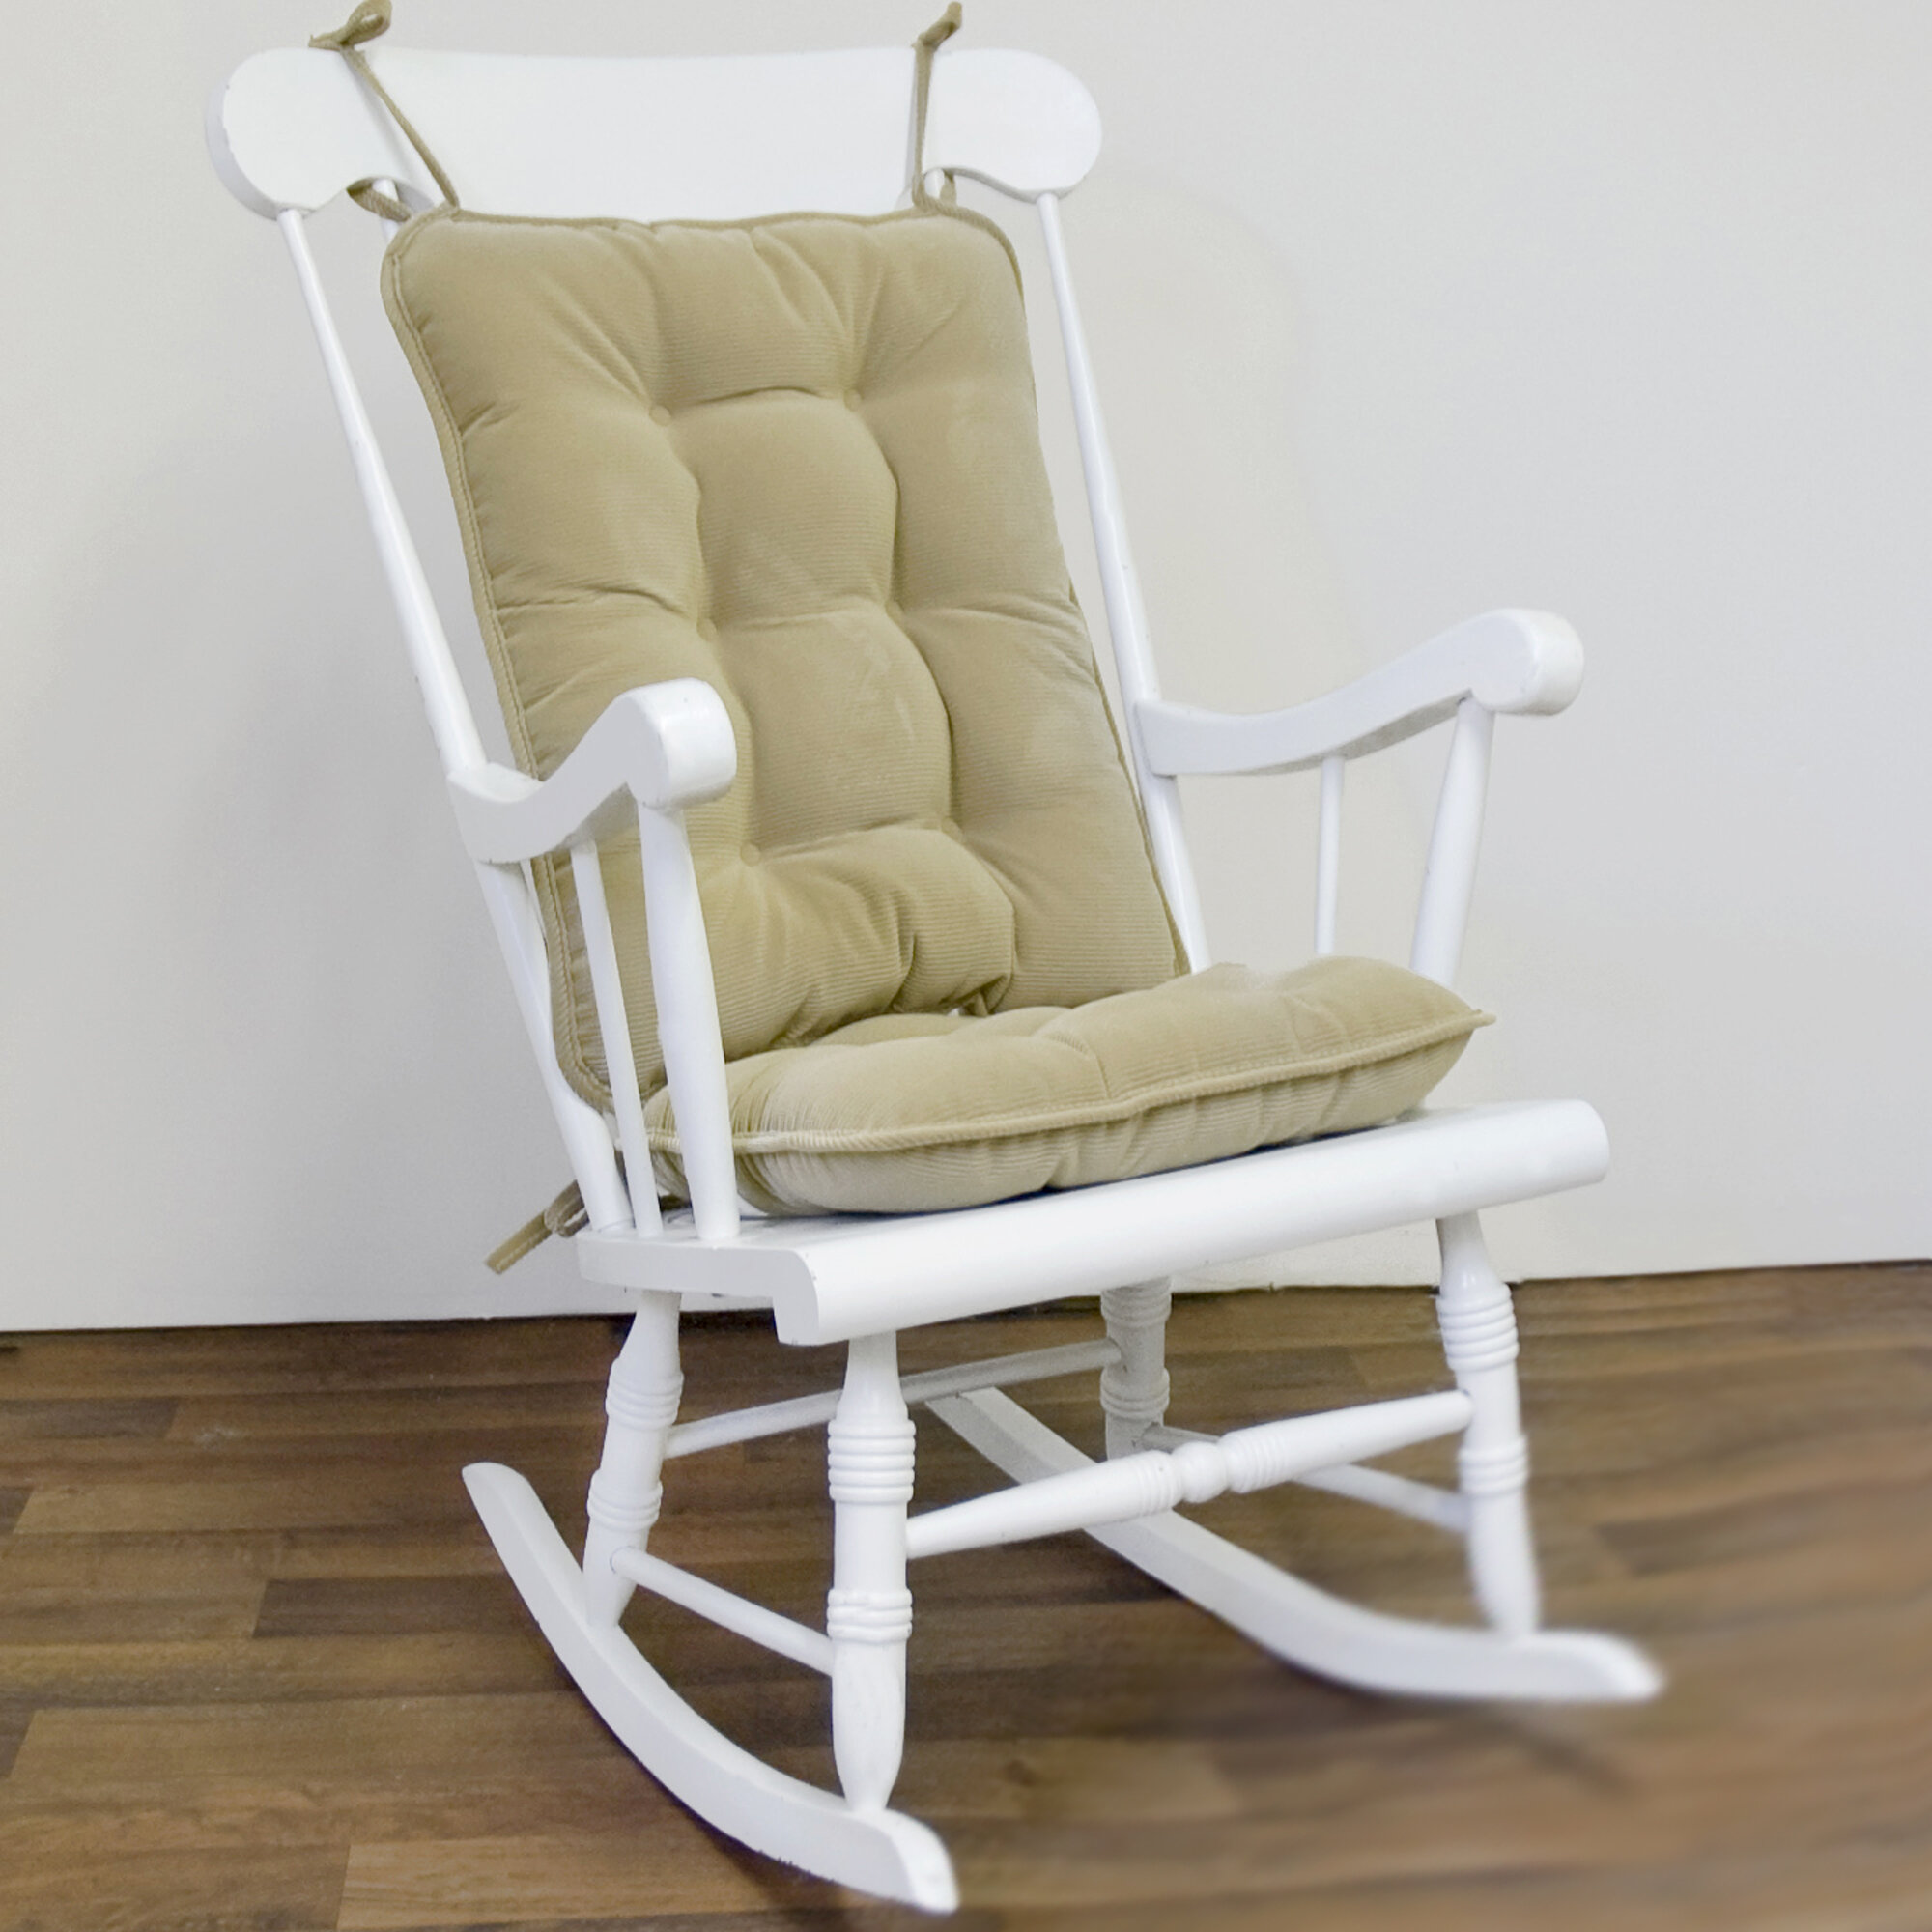 Greendale home fashions piece solid rocking chair